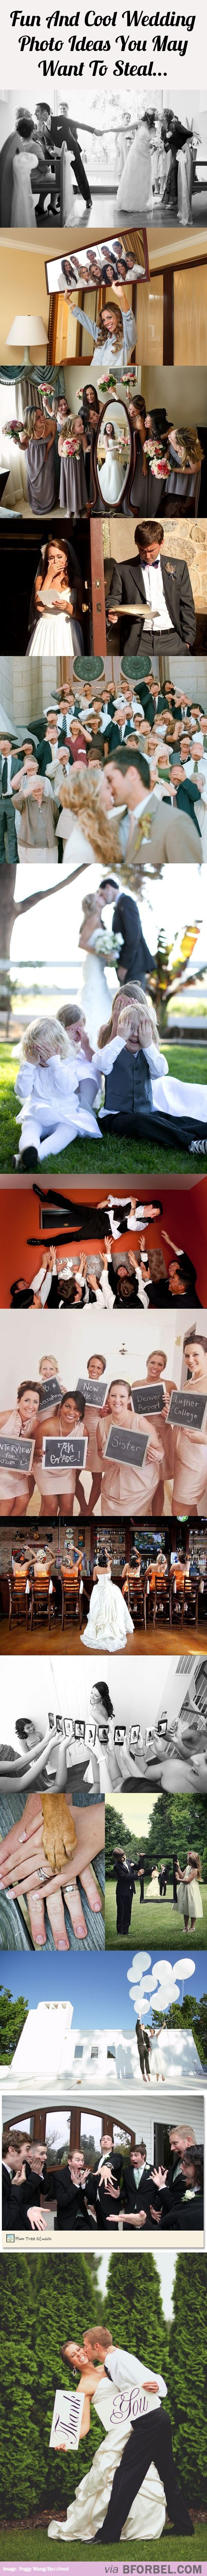 cool wedding shot ideas%0A Unusual and fun wedding photos I like the end pictures  the first one I  don u    t really like for wedding pictures   matrimony   Pinterest   Wedding